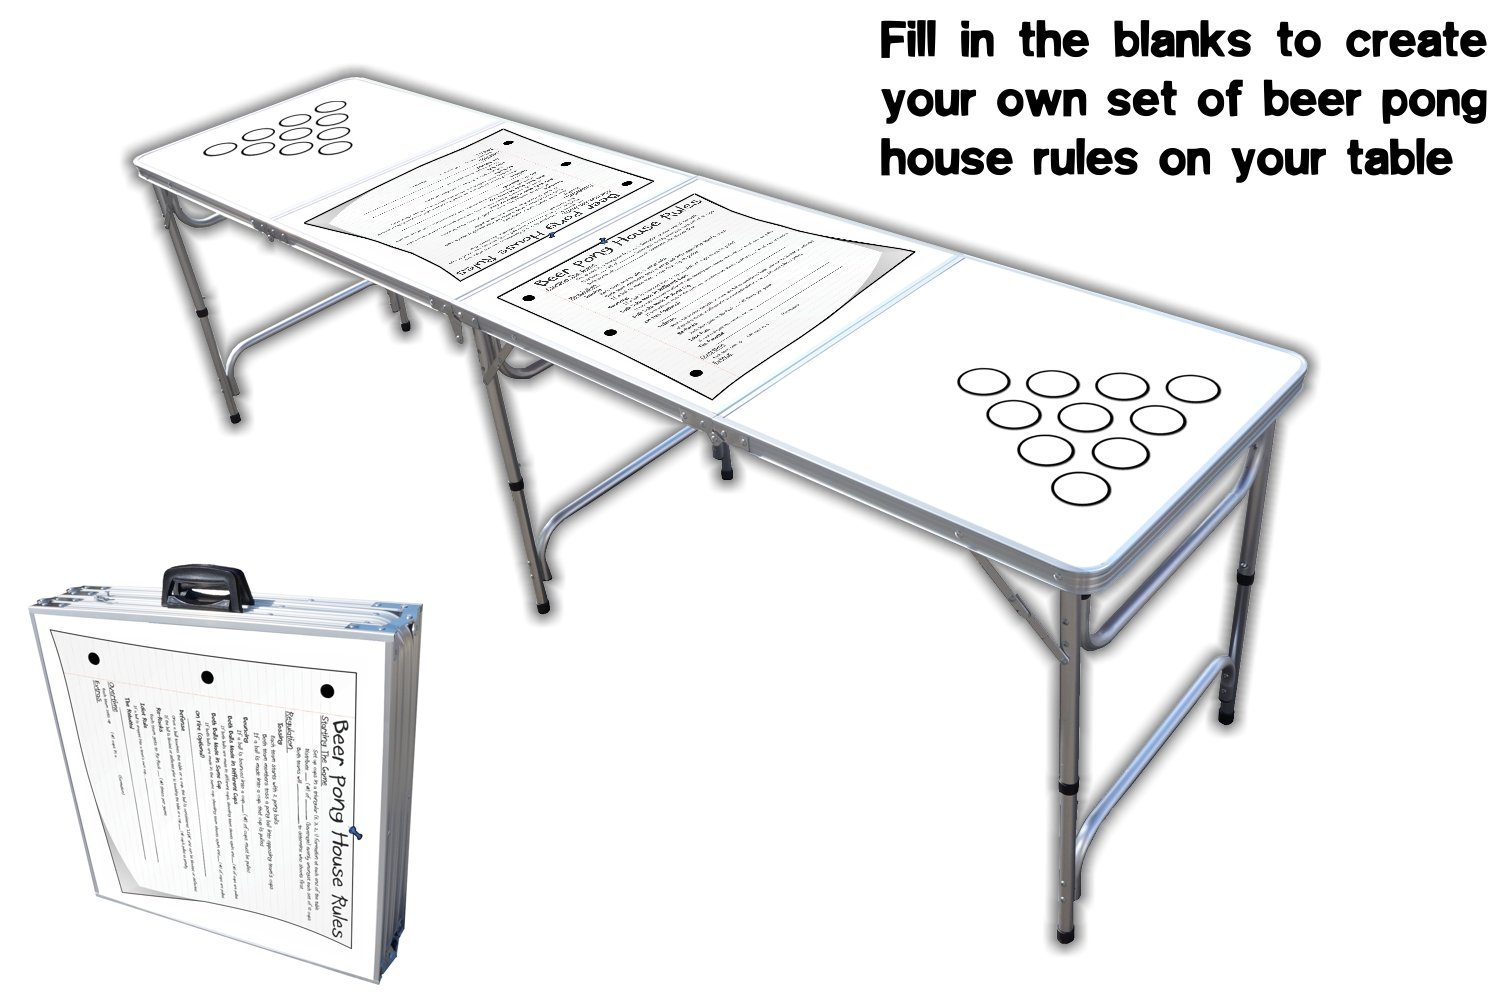 8-Foot Professional Beer Pong Table w/Cup Holes - House Rules Graphic